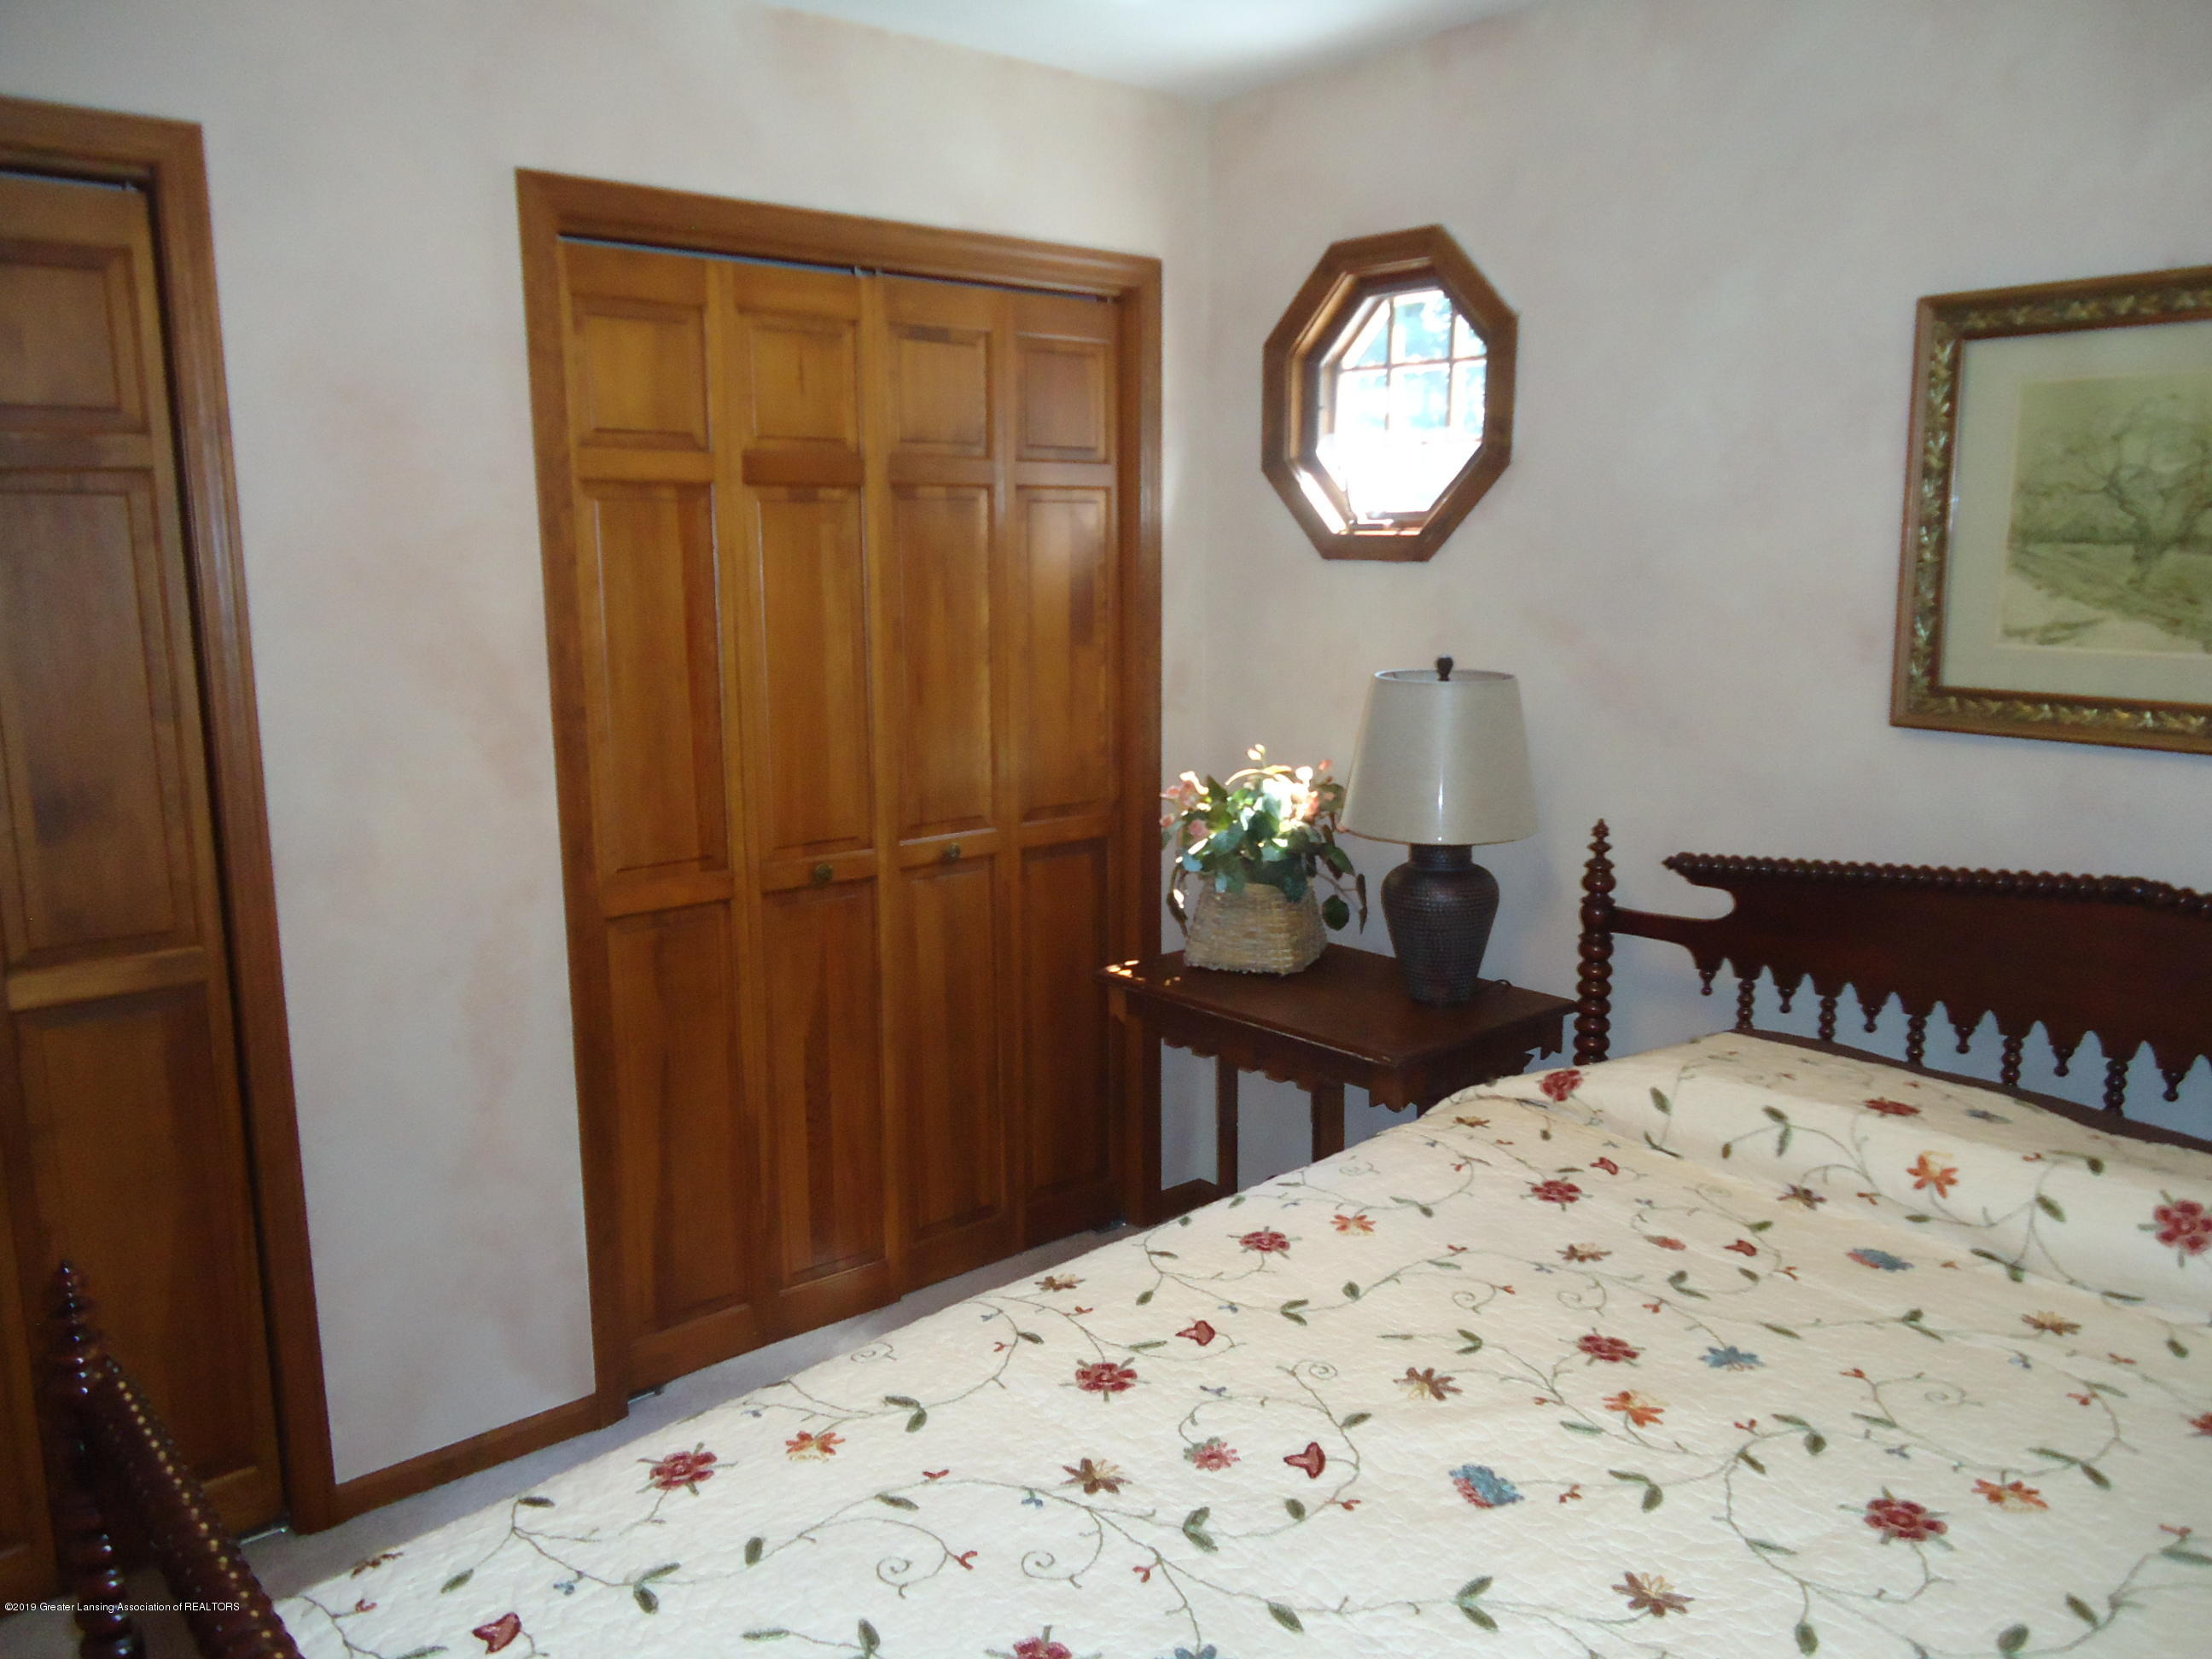 530 S Ainger Rd - Bedroom 3a - 27